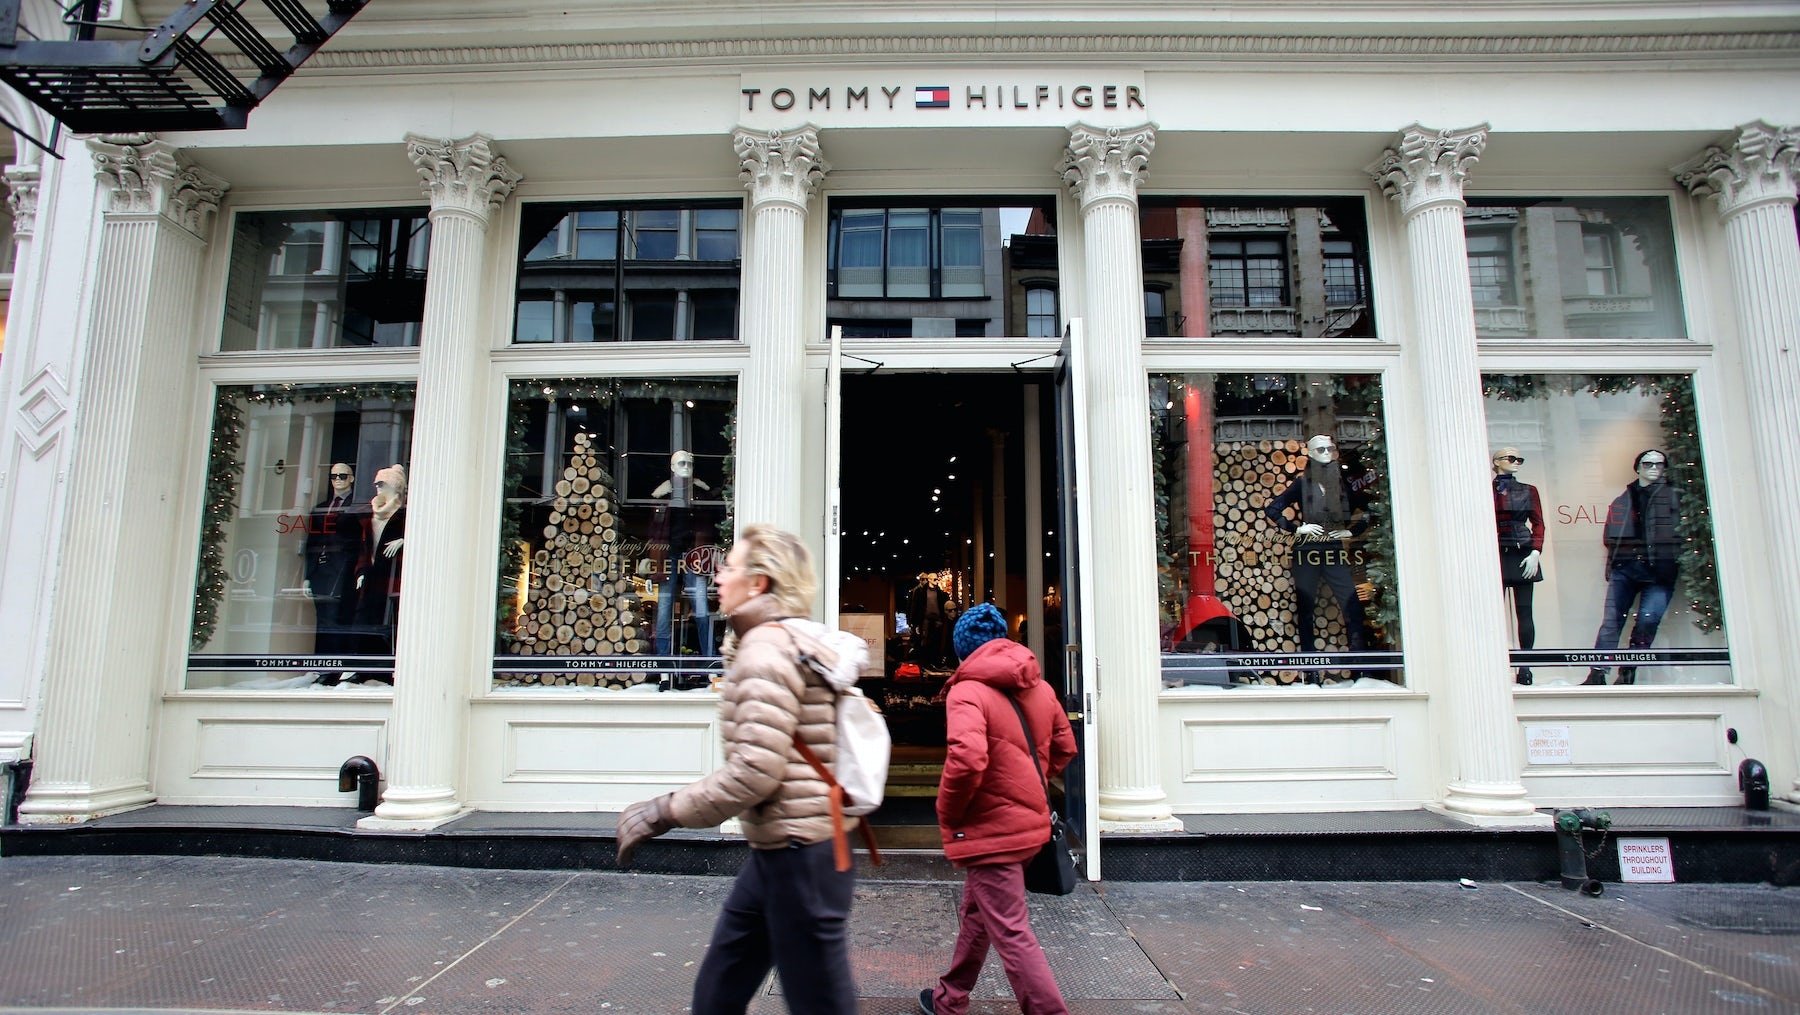 Shoppers outside a Tommy Hilfiger store | Source: Shutterstock